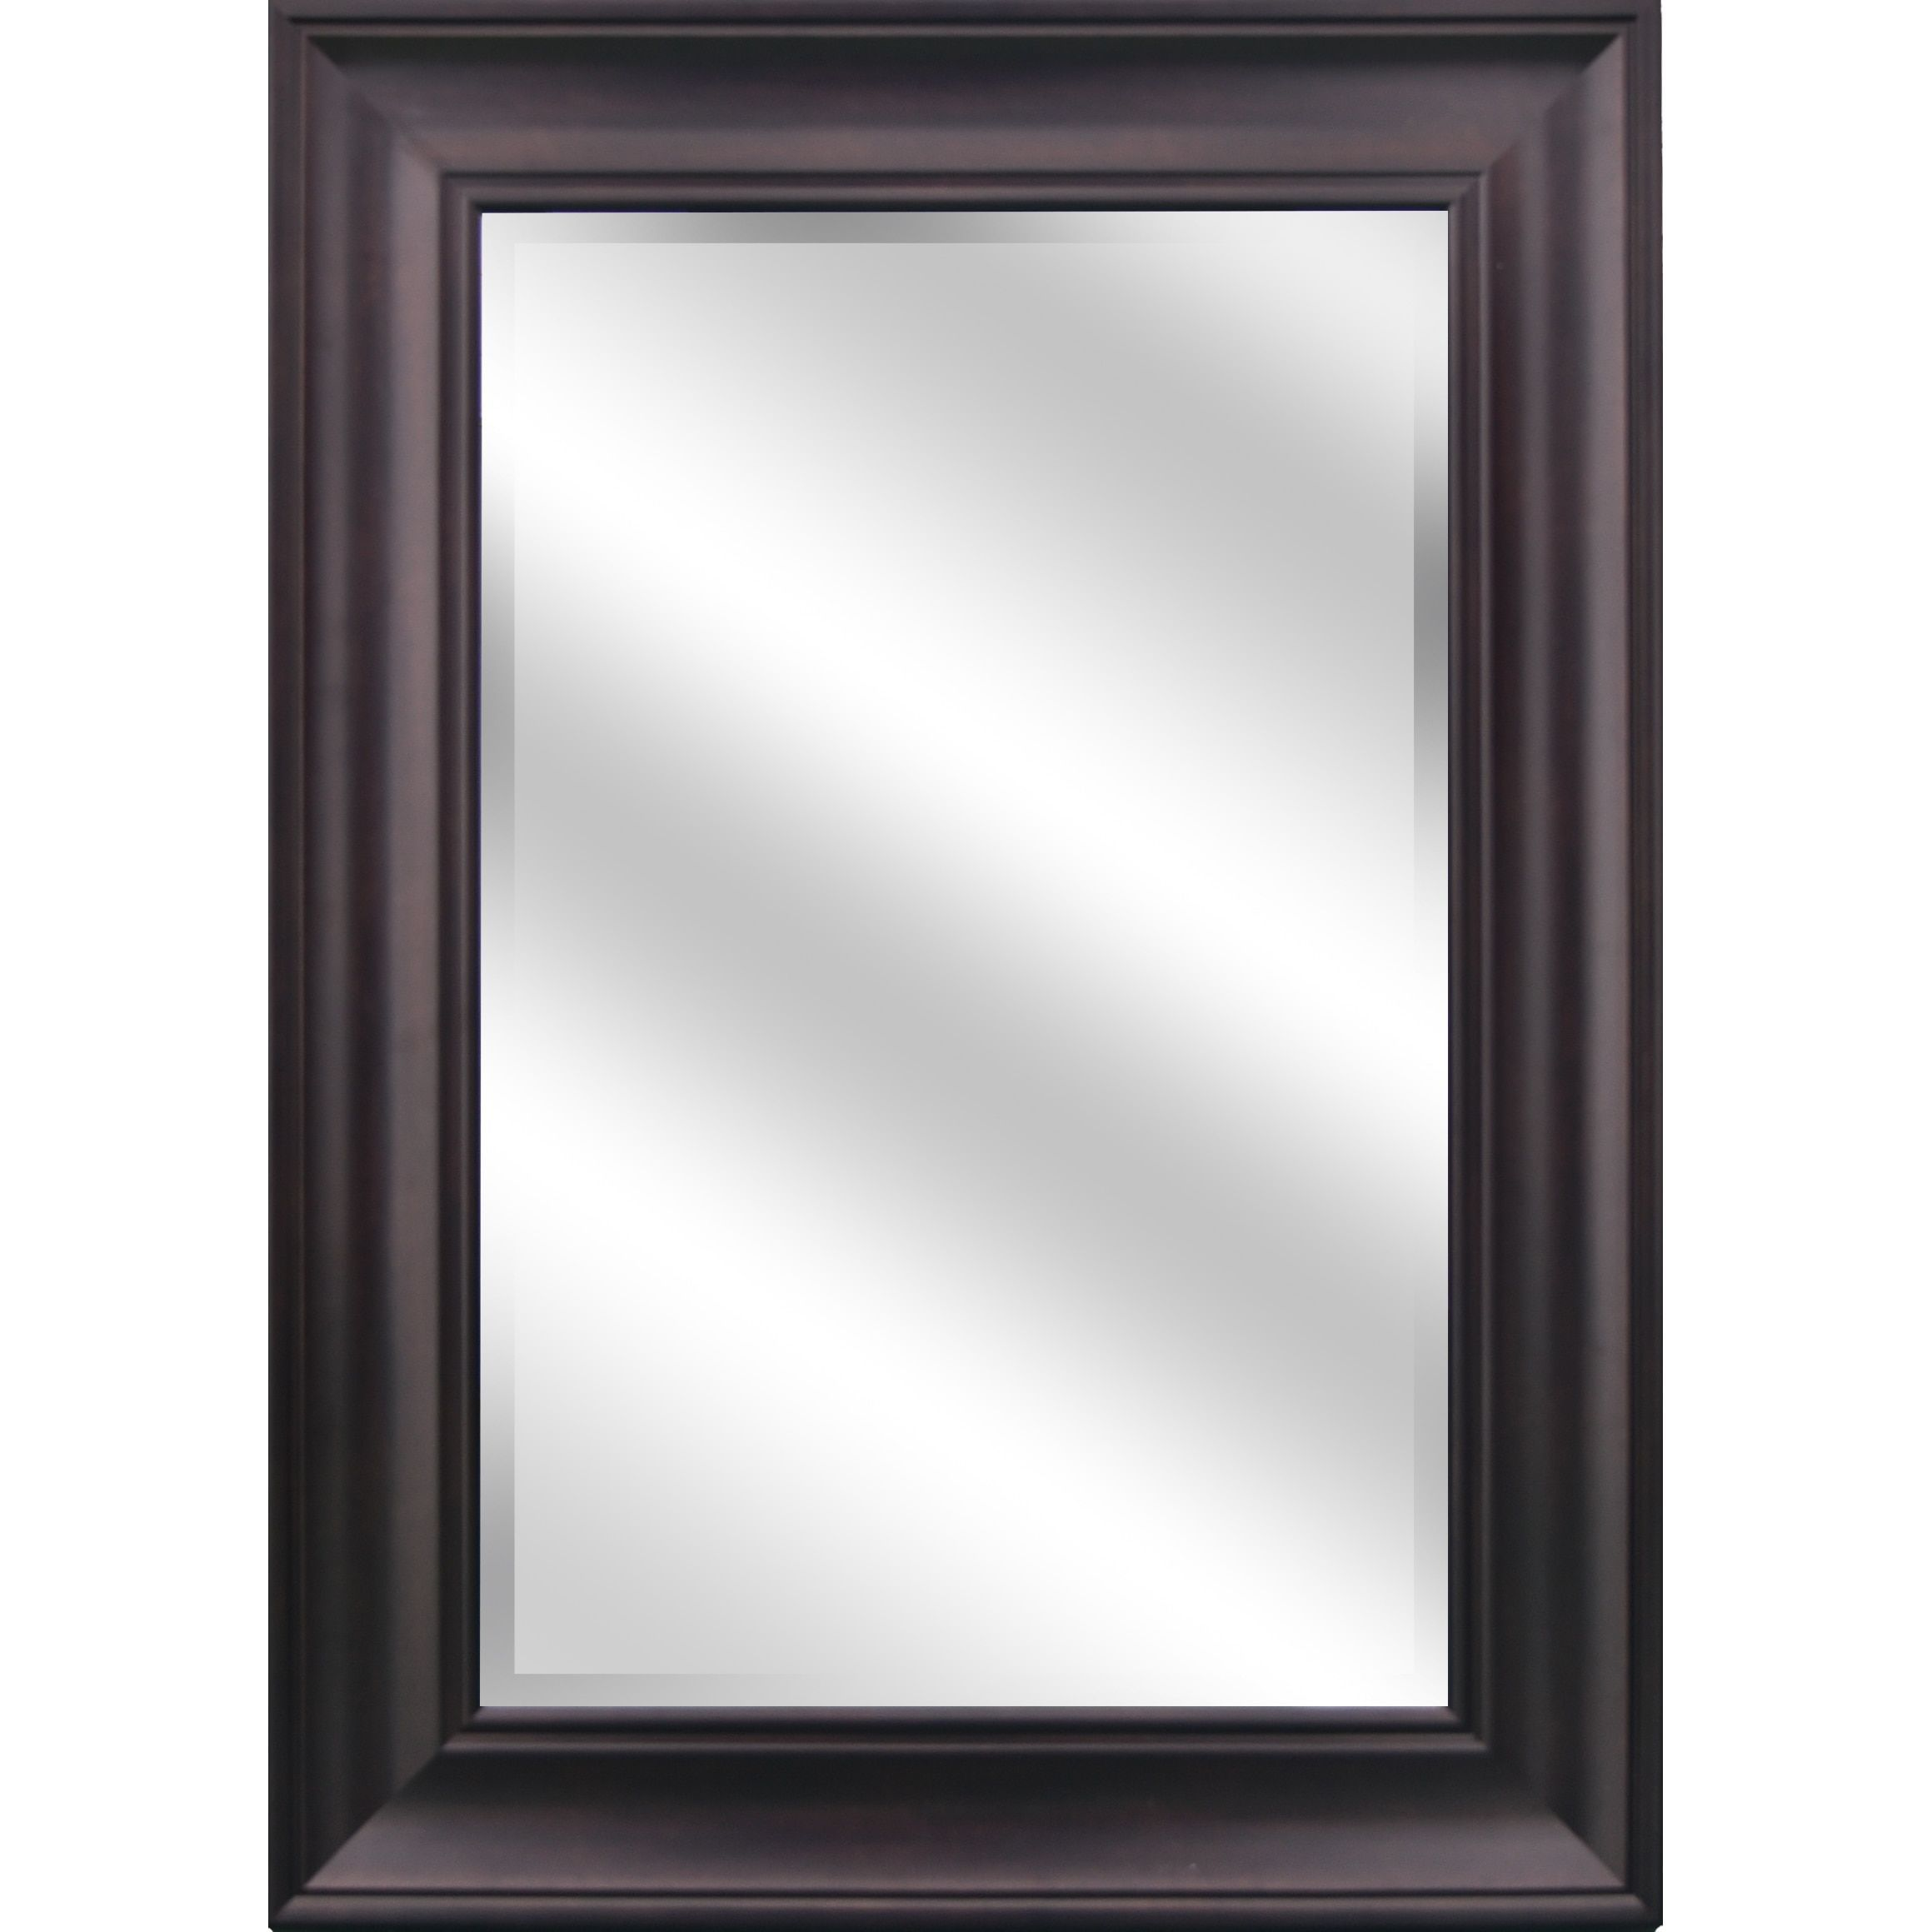 Oil Rubbed Bronze Mirror (Oil Rubbed Bronze, 23x27, 5 Frame, Framed ...